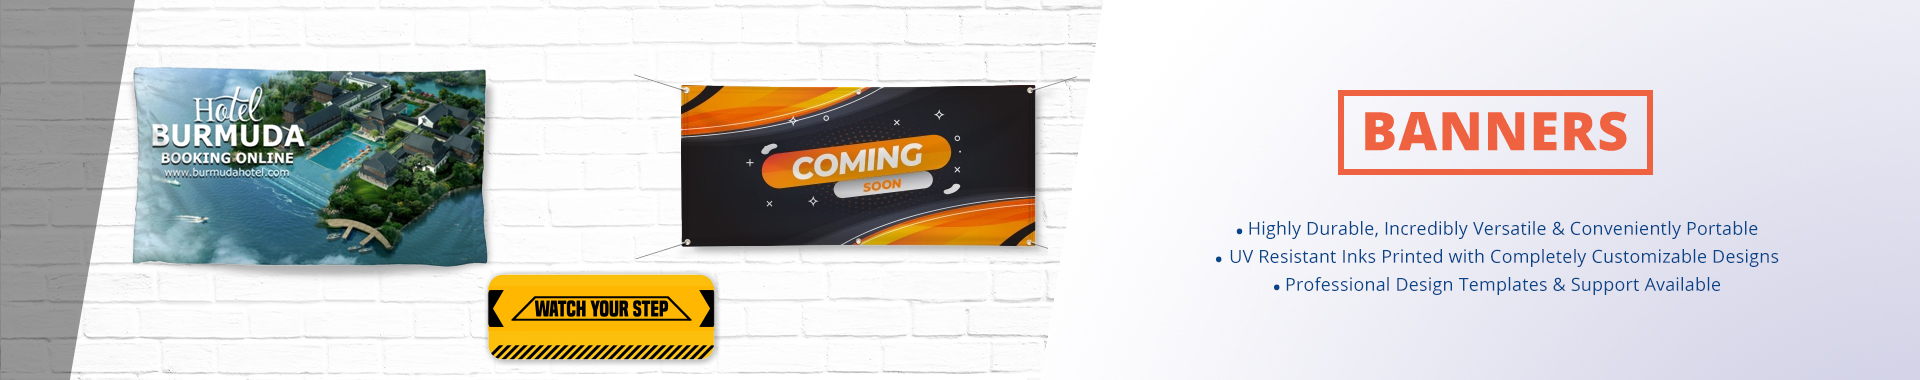 Category Banners Banner